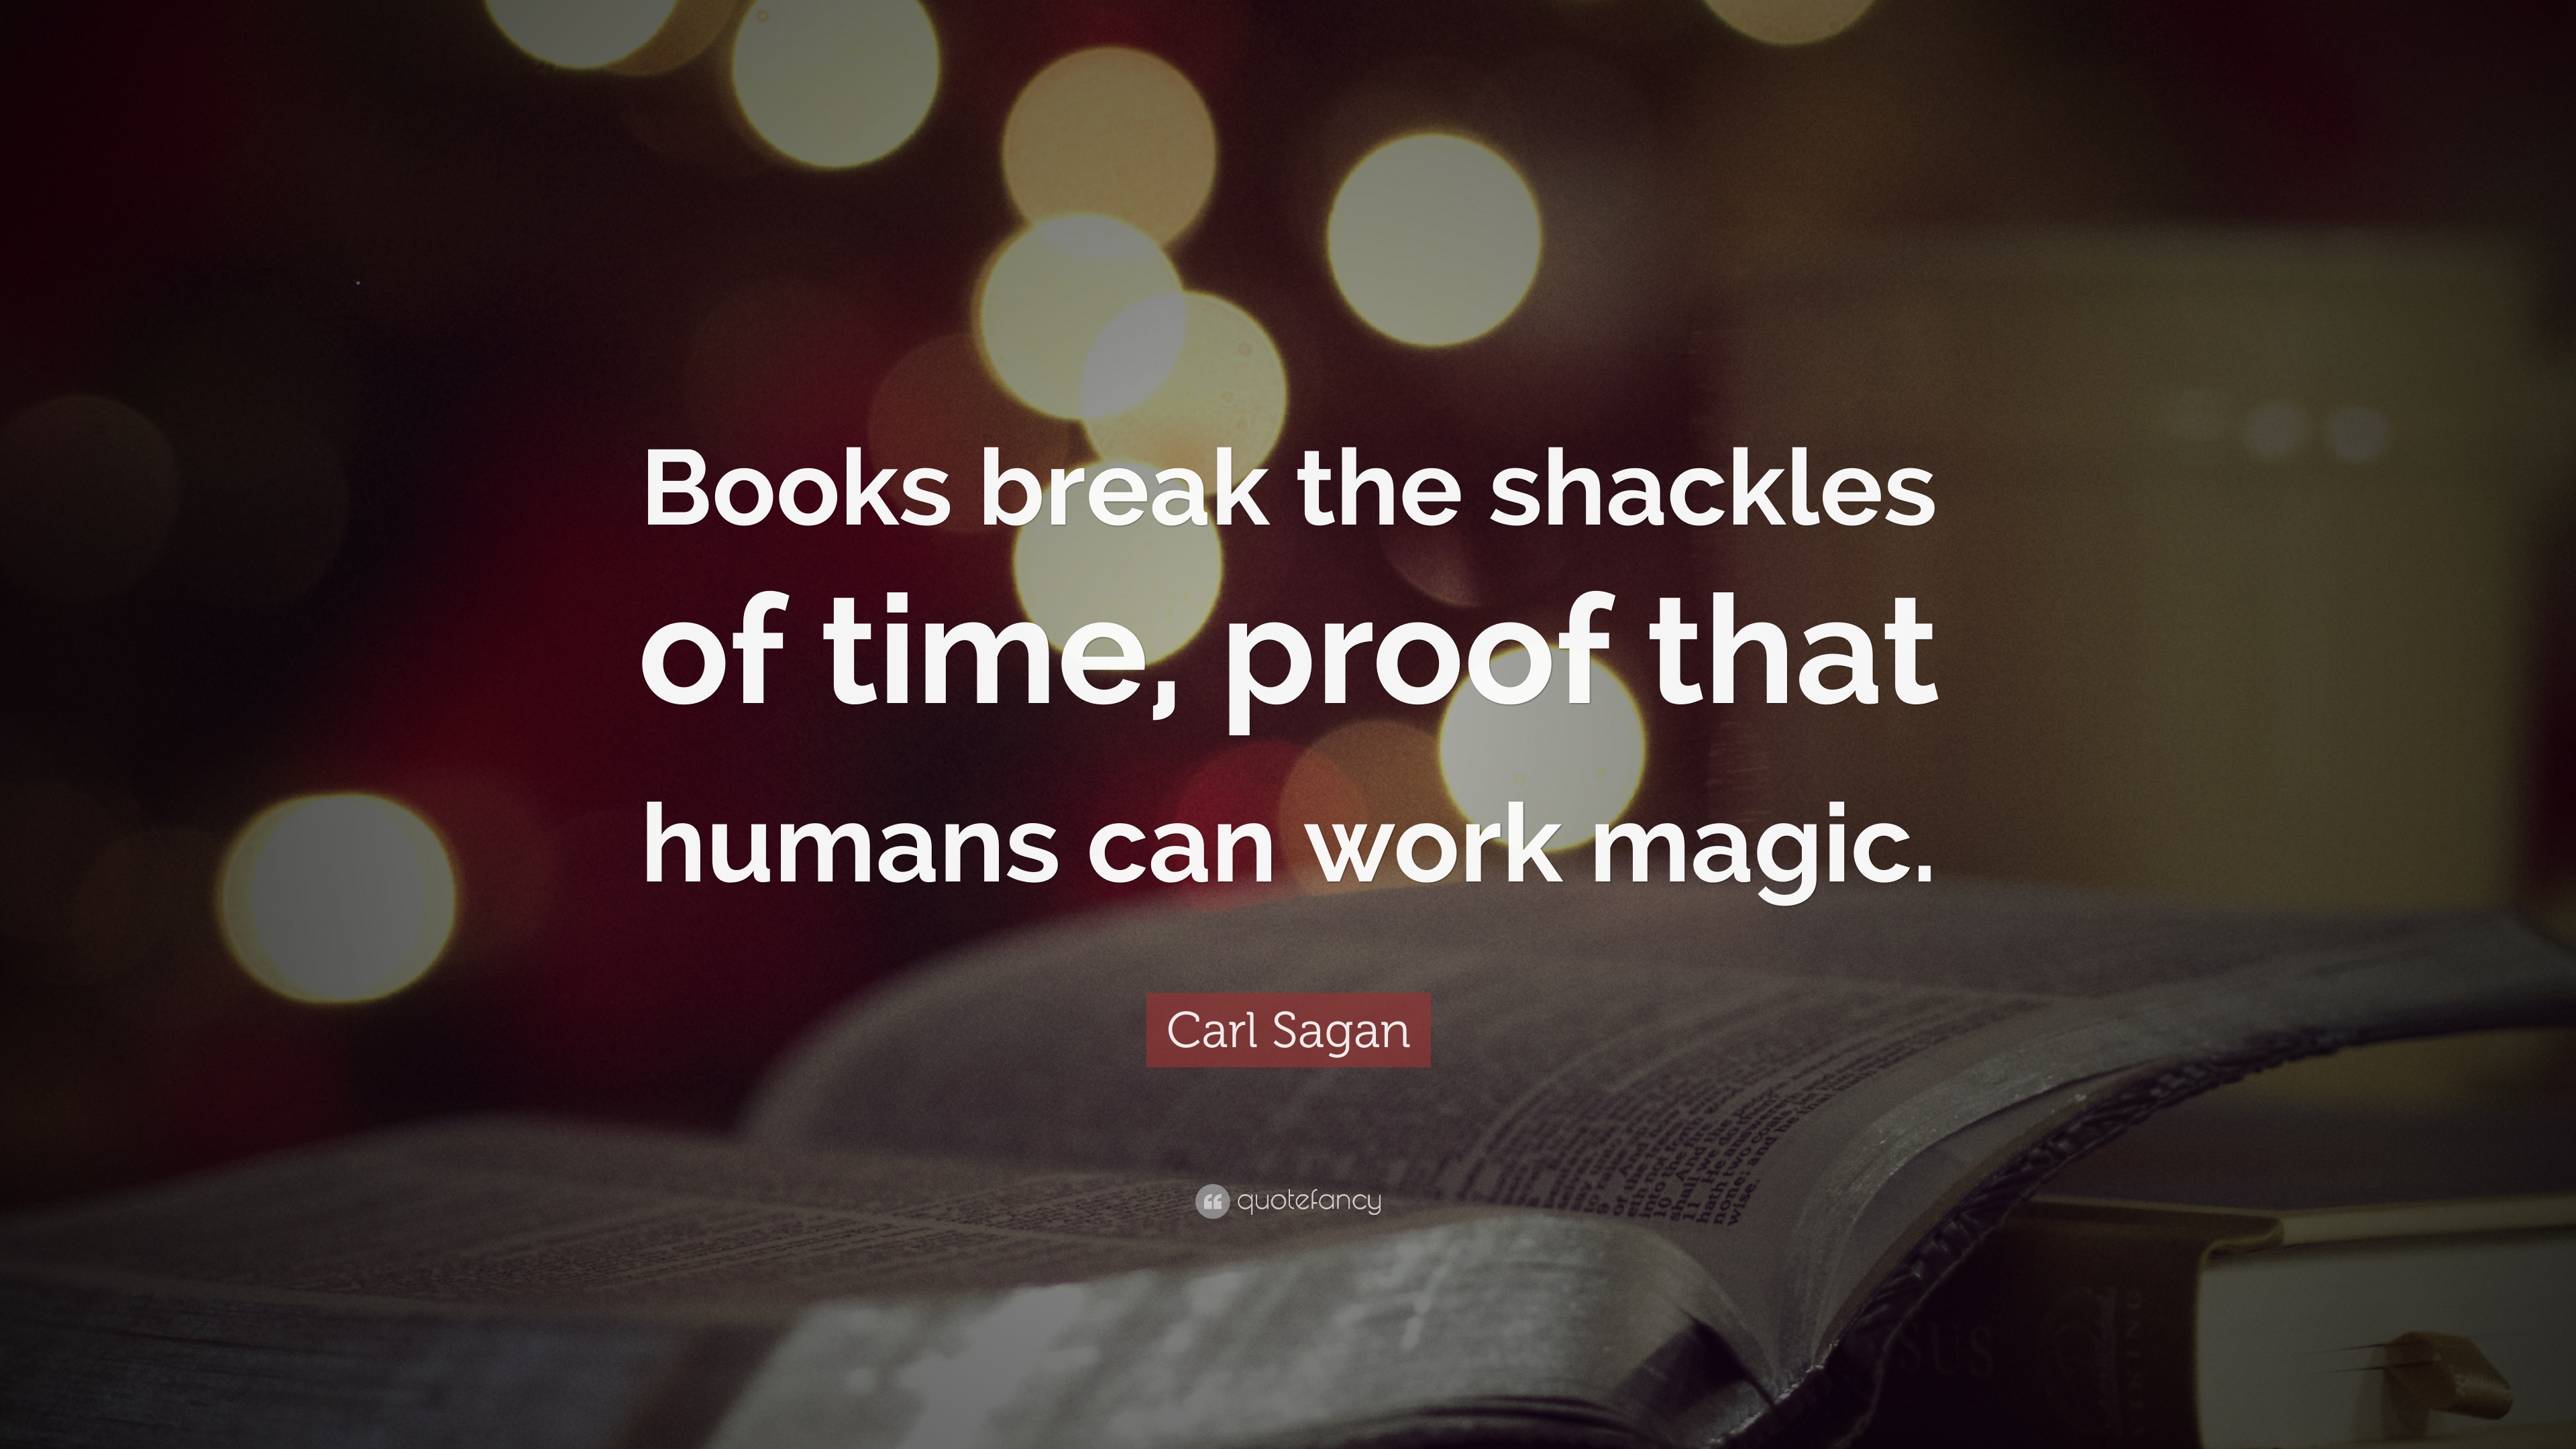 440363-Carl-Sagan-Quote-Books-break-the-shackles-of-time-proof-that